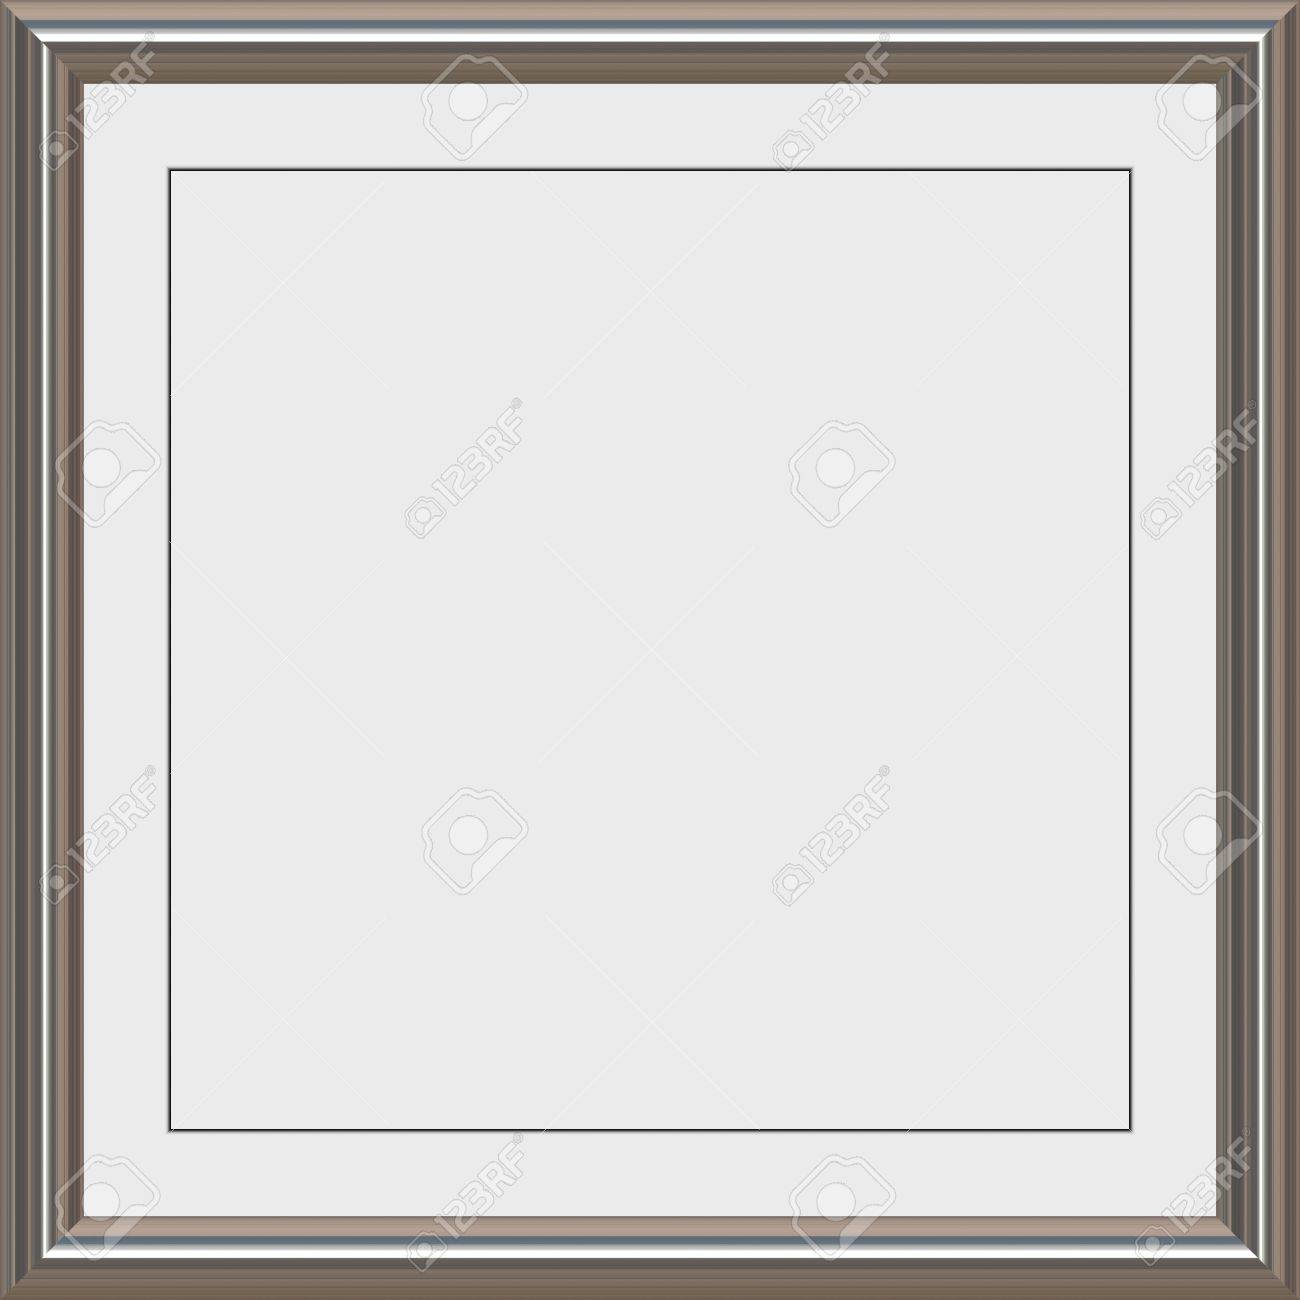 stock photo shiny metal frame with white matte for certificates awards or photos